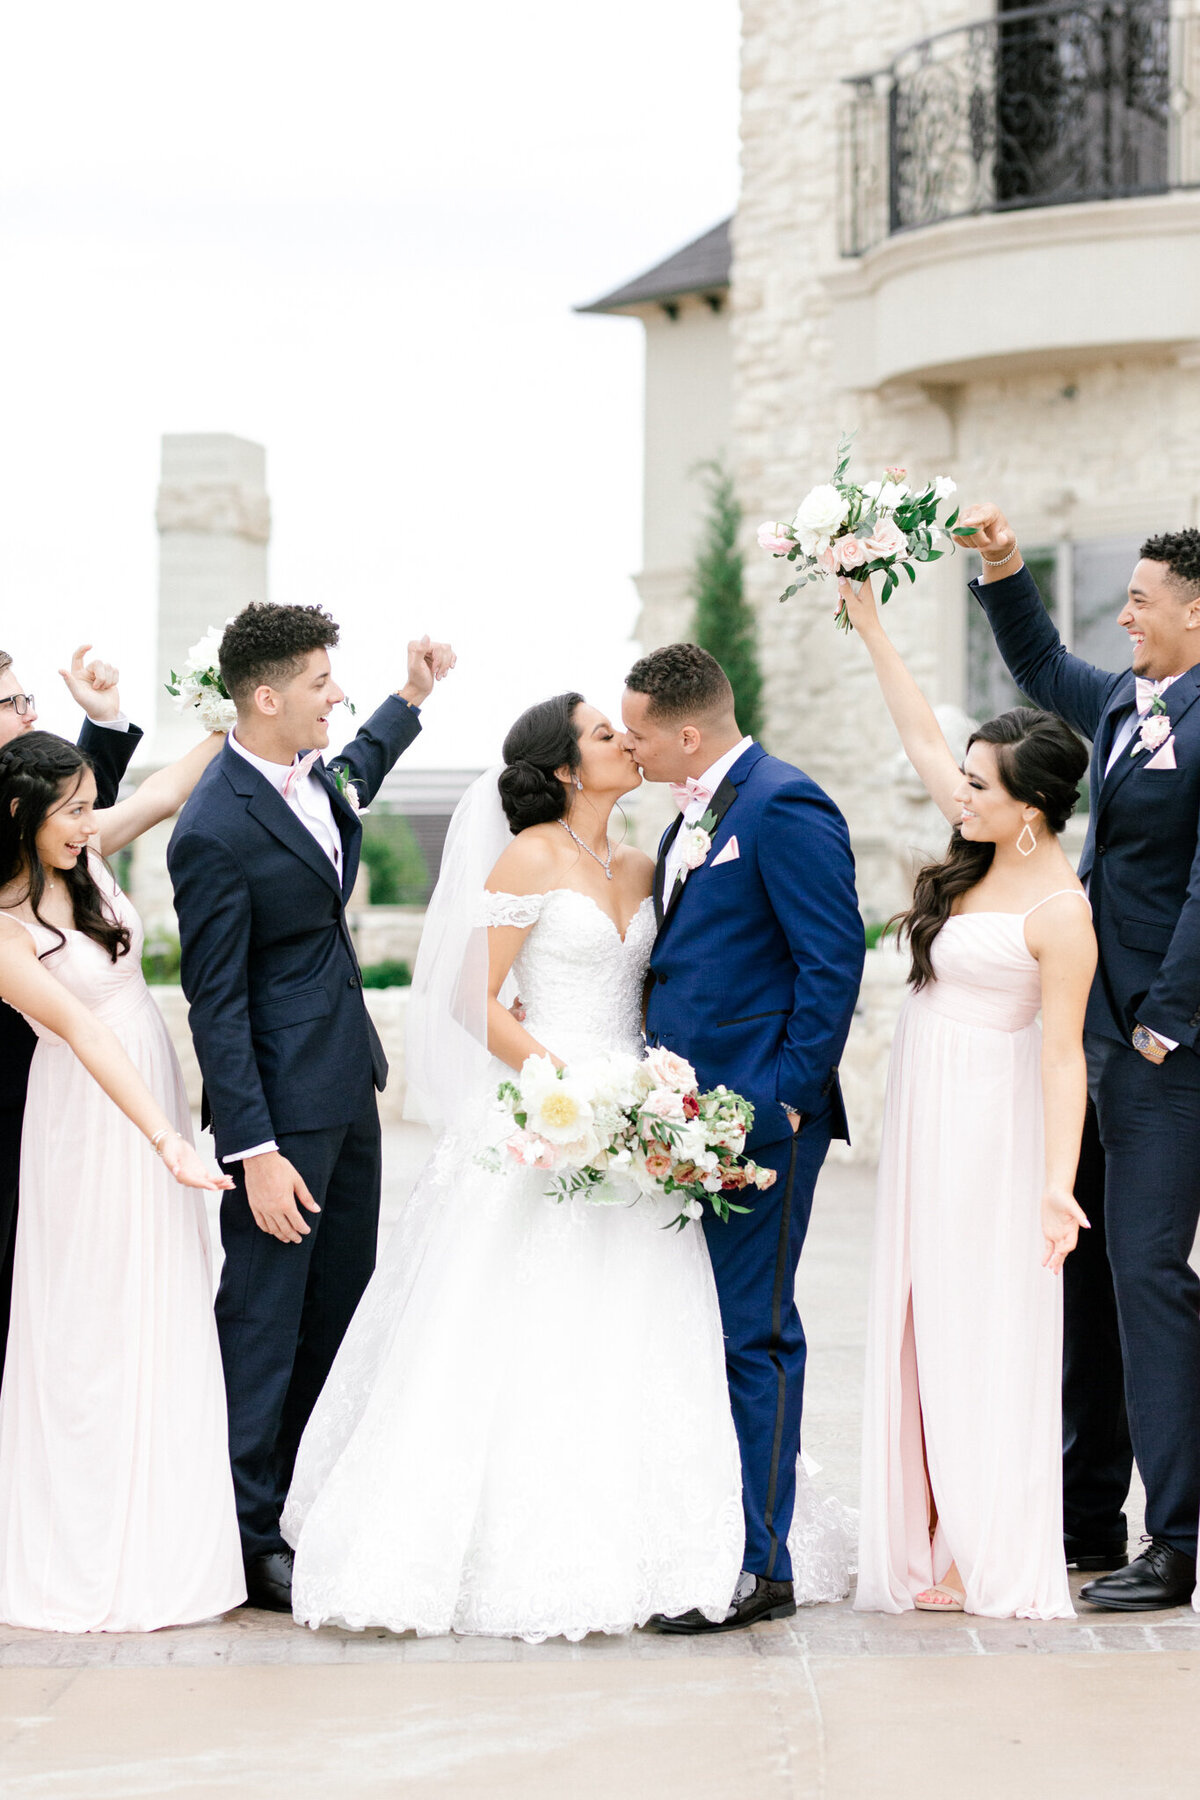 Jasmine & Josh Wedding at Knotting Hill Place | Dallas DFW Wedding Photographer | Sami Kathryn Photography-87